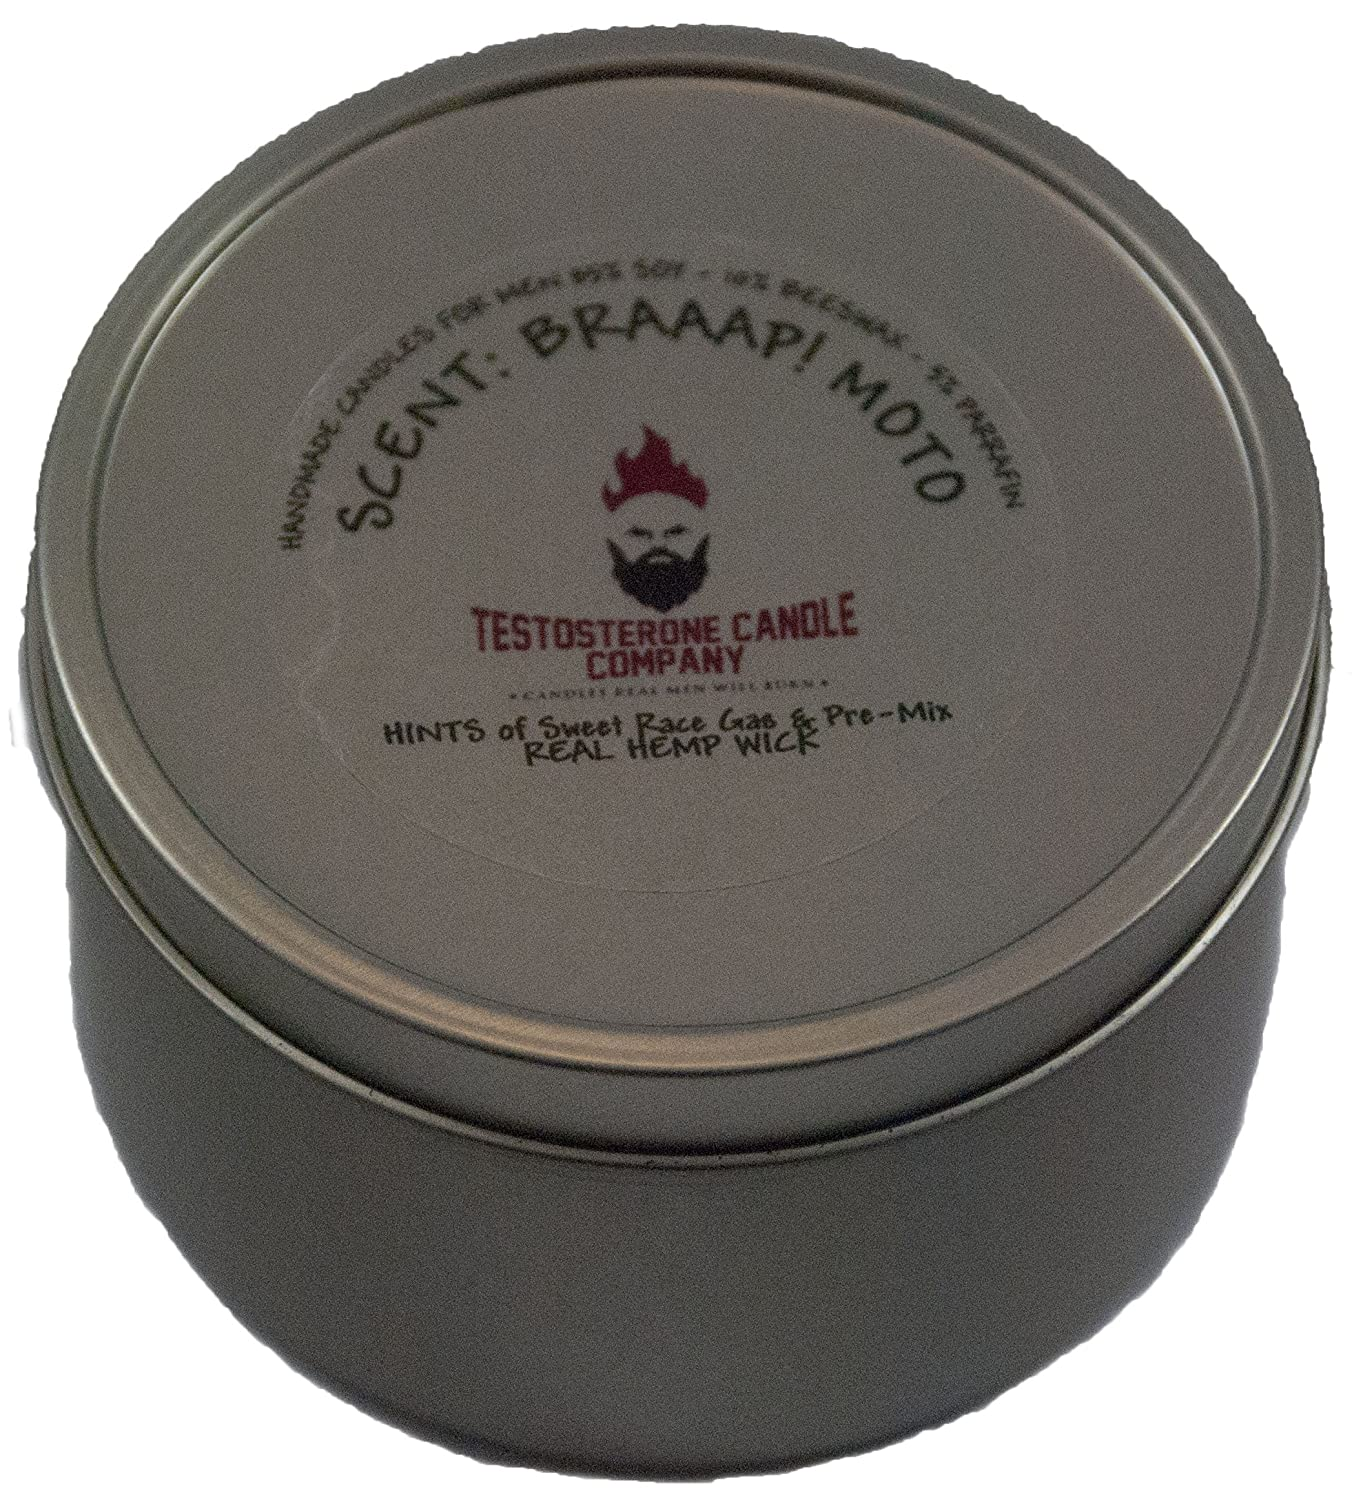 Testosterone Candle Company Braap! Moto Motocross Race Gas, Castor Oil & Dirt Scented Motocross Candle 8oz